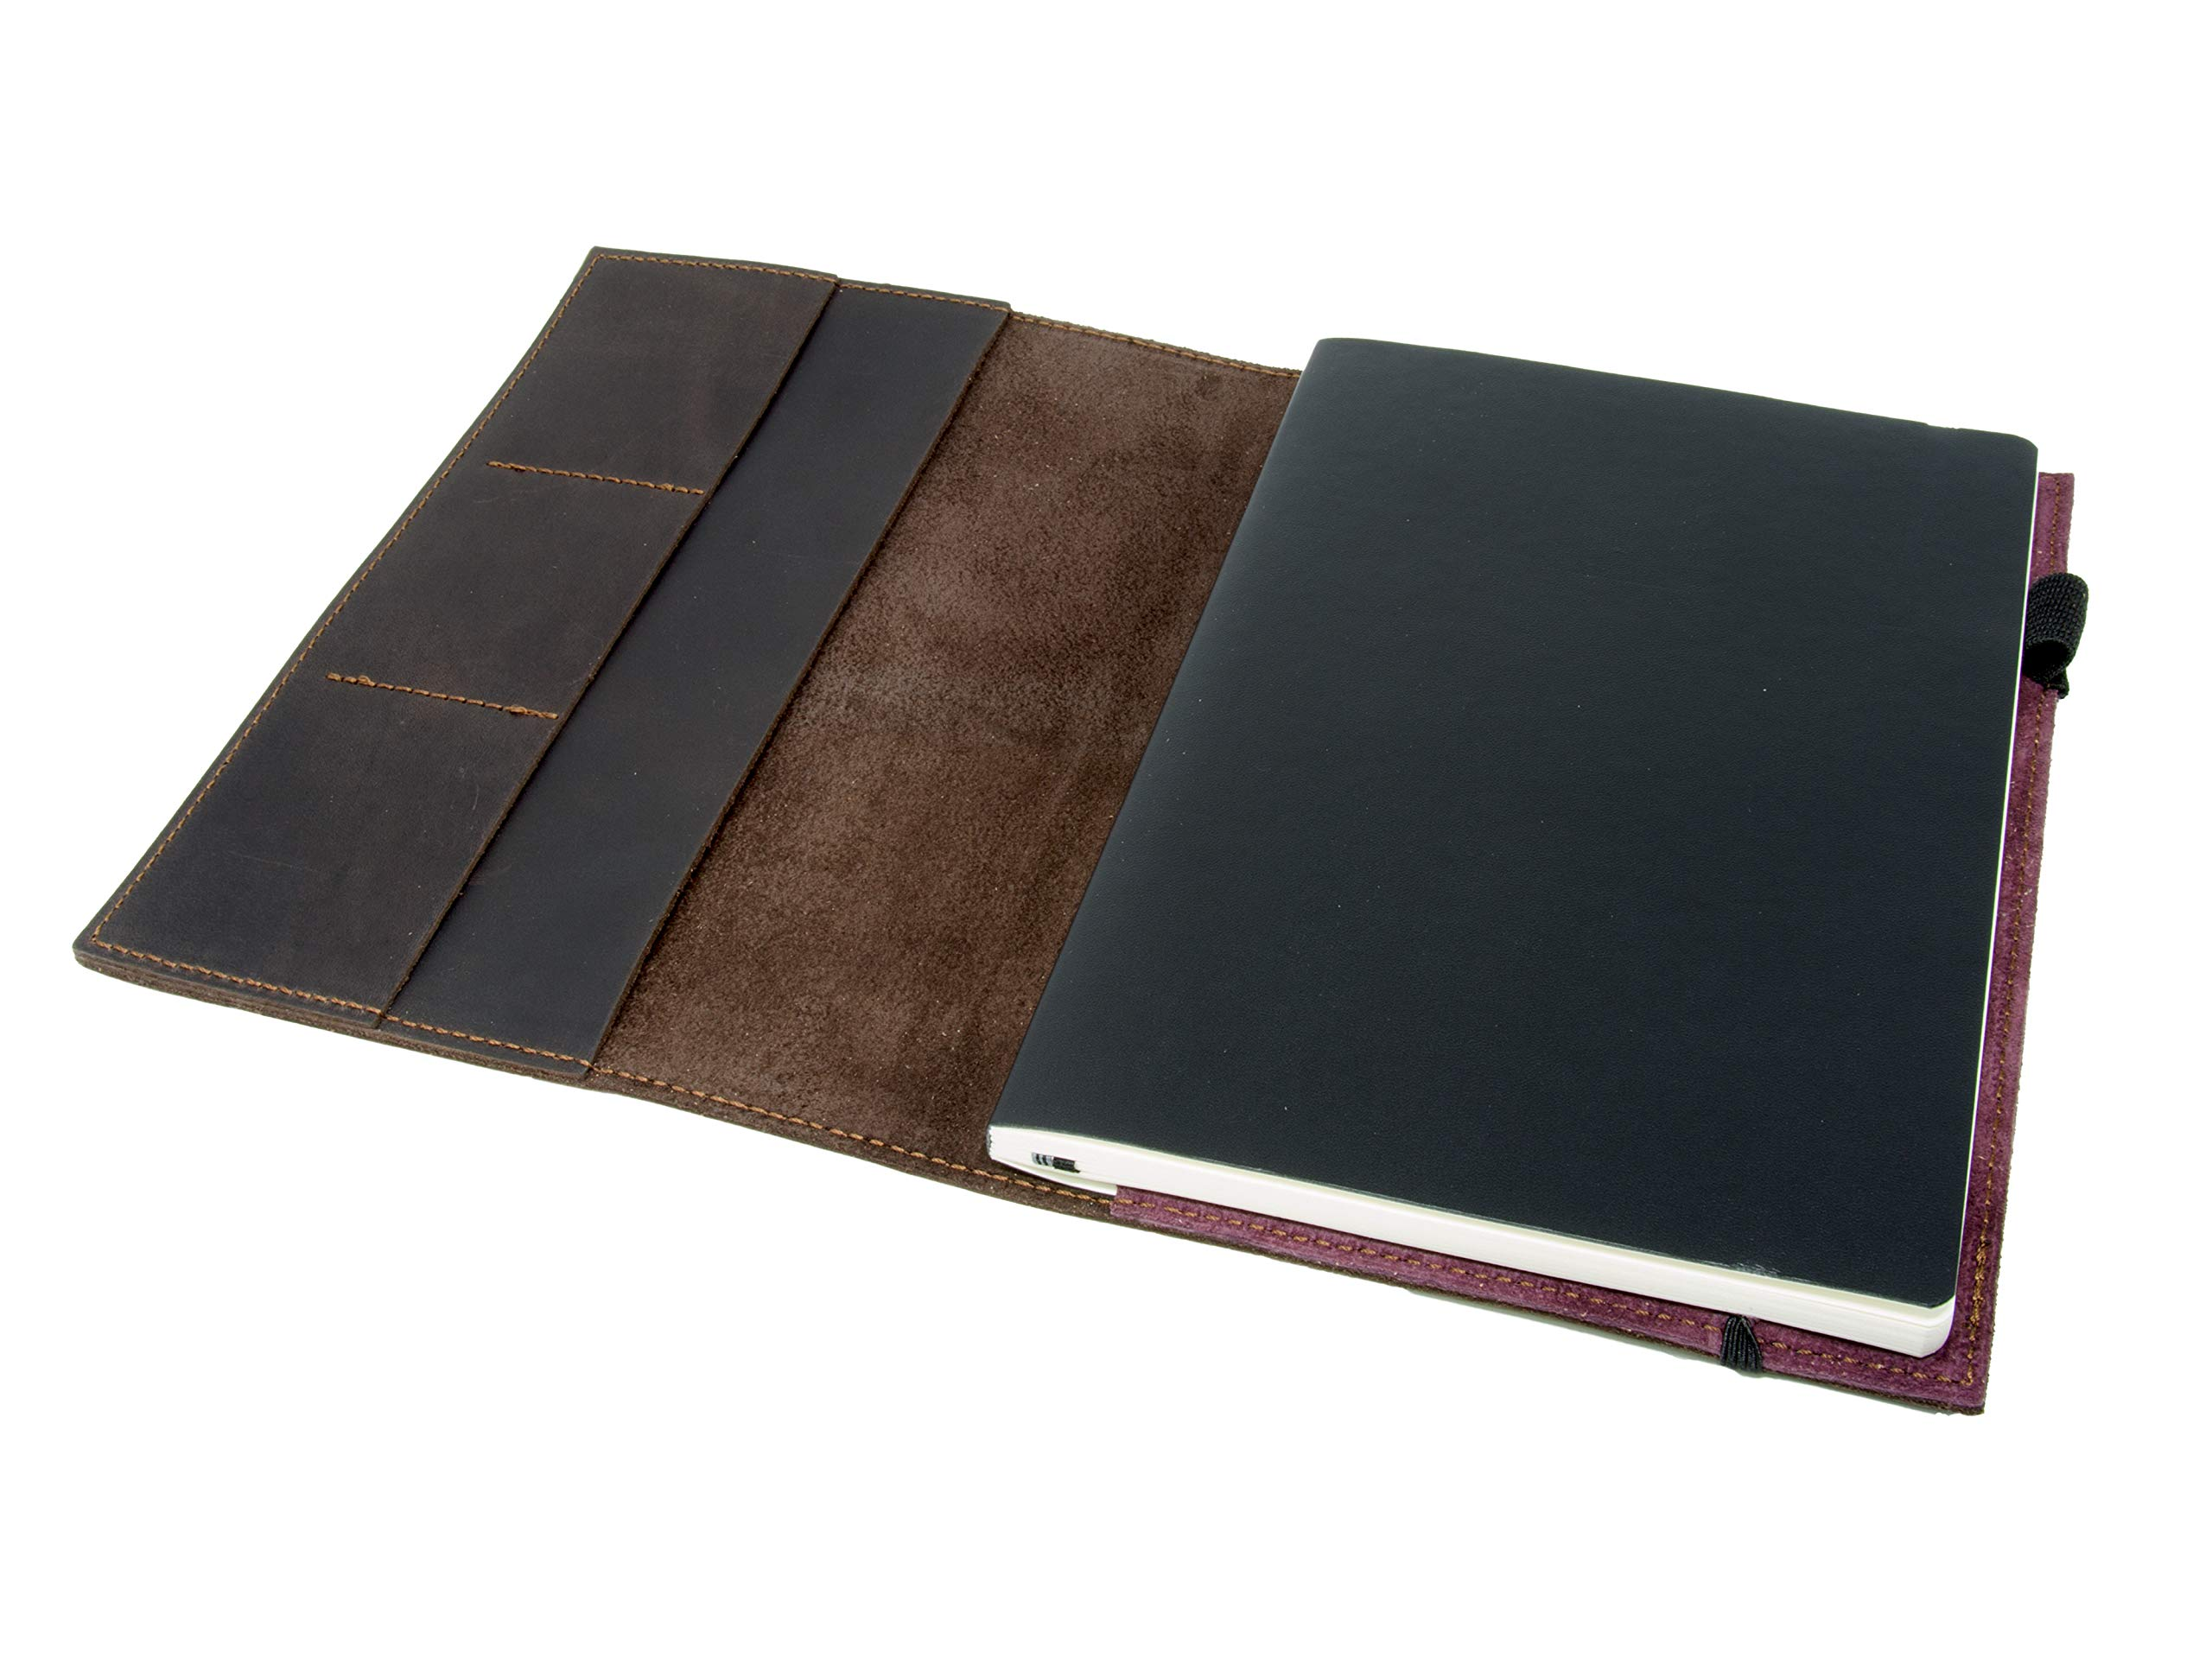 Leather Journal Leuchtturm1917 Medium A5 (5.75''x8.25'') Softcover Notebook Travel Journal Cover Distressed Leather Refillable Writing Diary with Elastic Closure (Brown Nut Case) by OleksynPrannyk